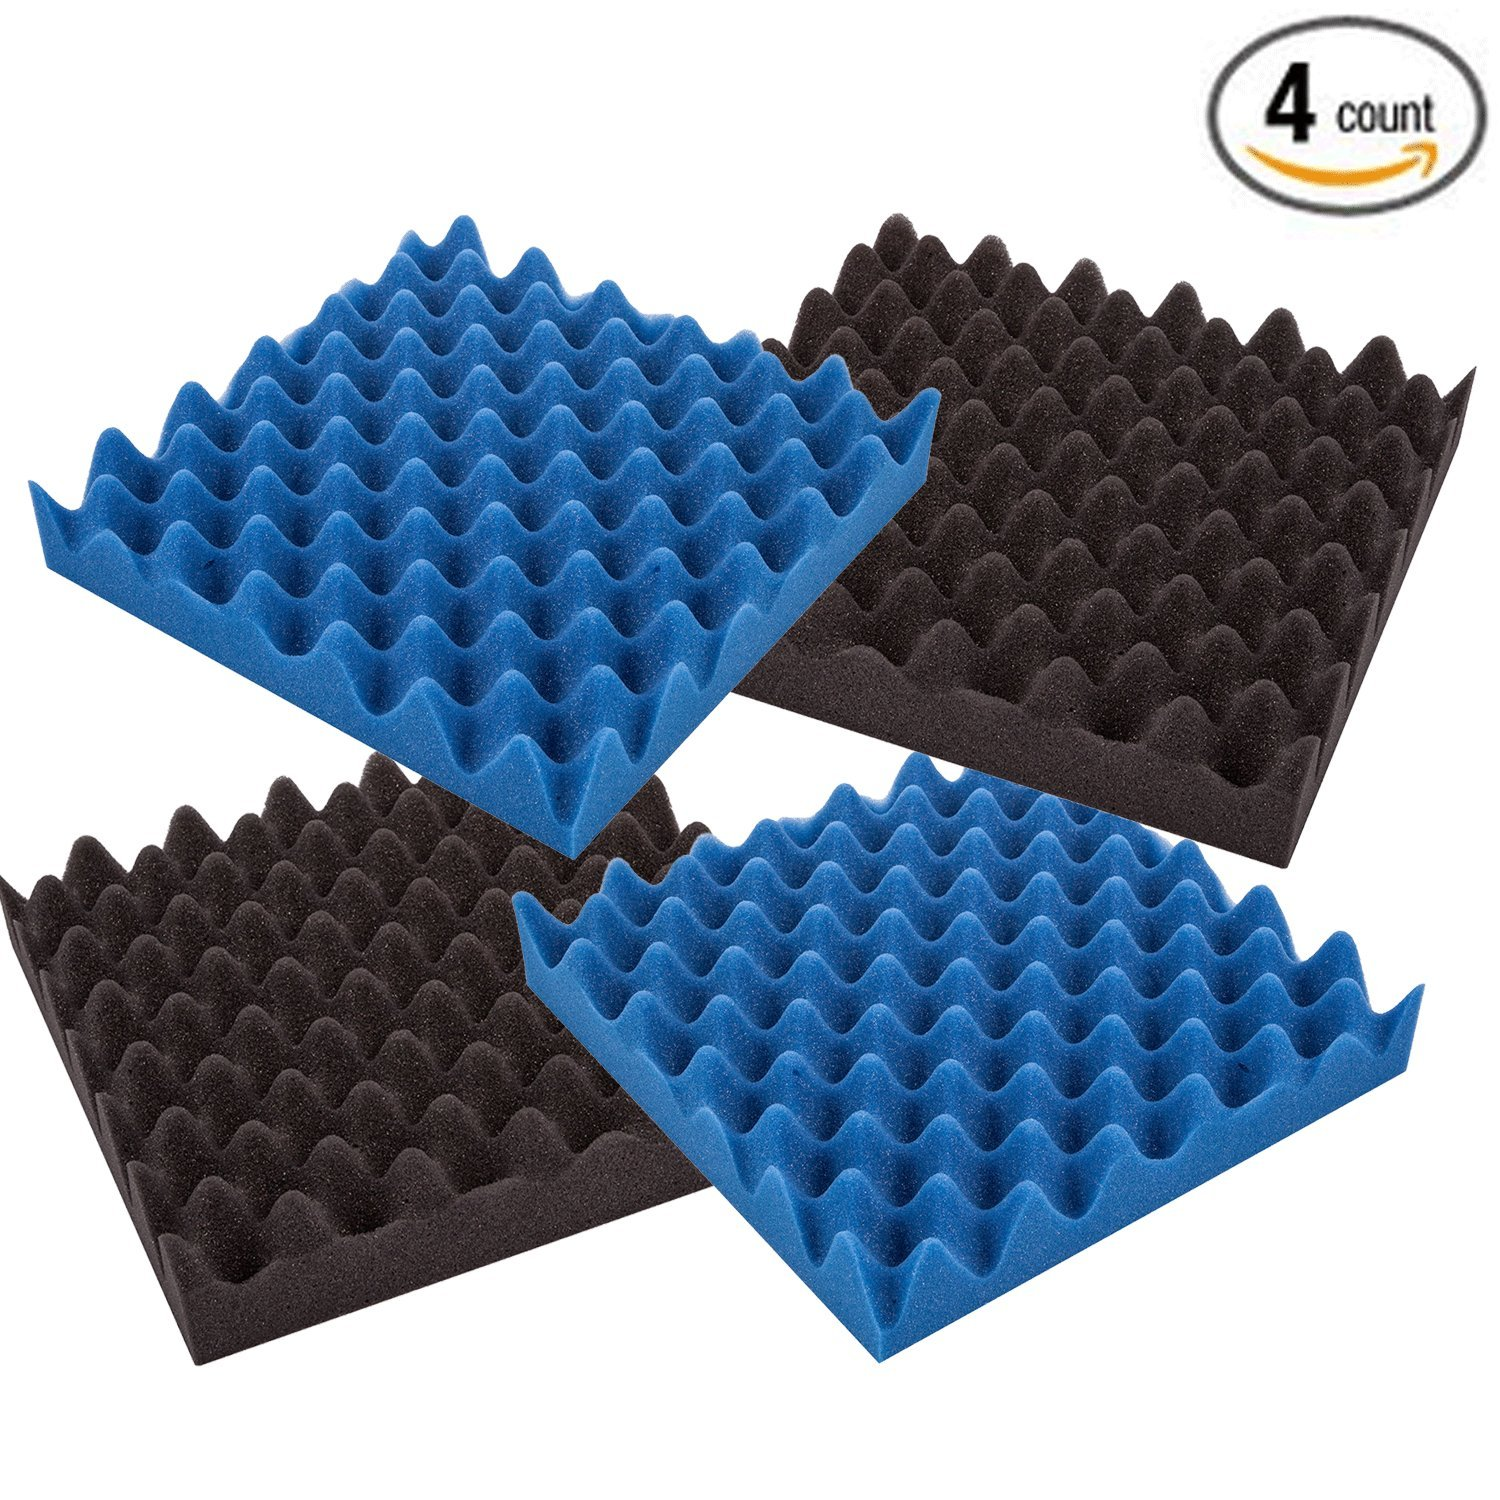 """4 Pack- Charcoal/Ice Blue Acoustic Panels Studio Foam Convoluted 2.5"""" X 12"""" X 12"""" Sound Tiles""""Egg Crate"""""""